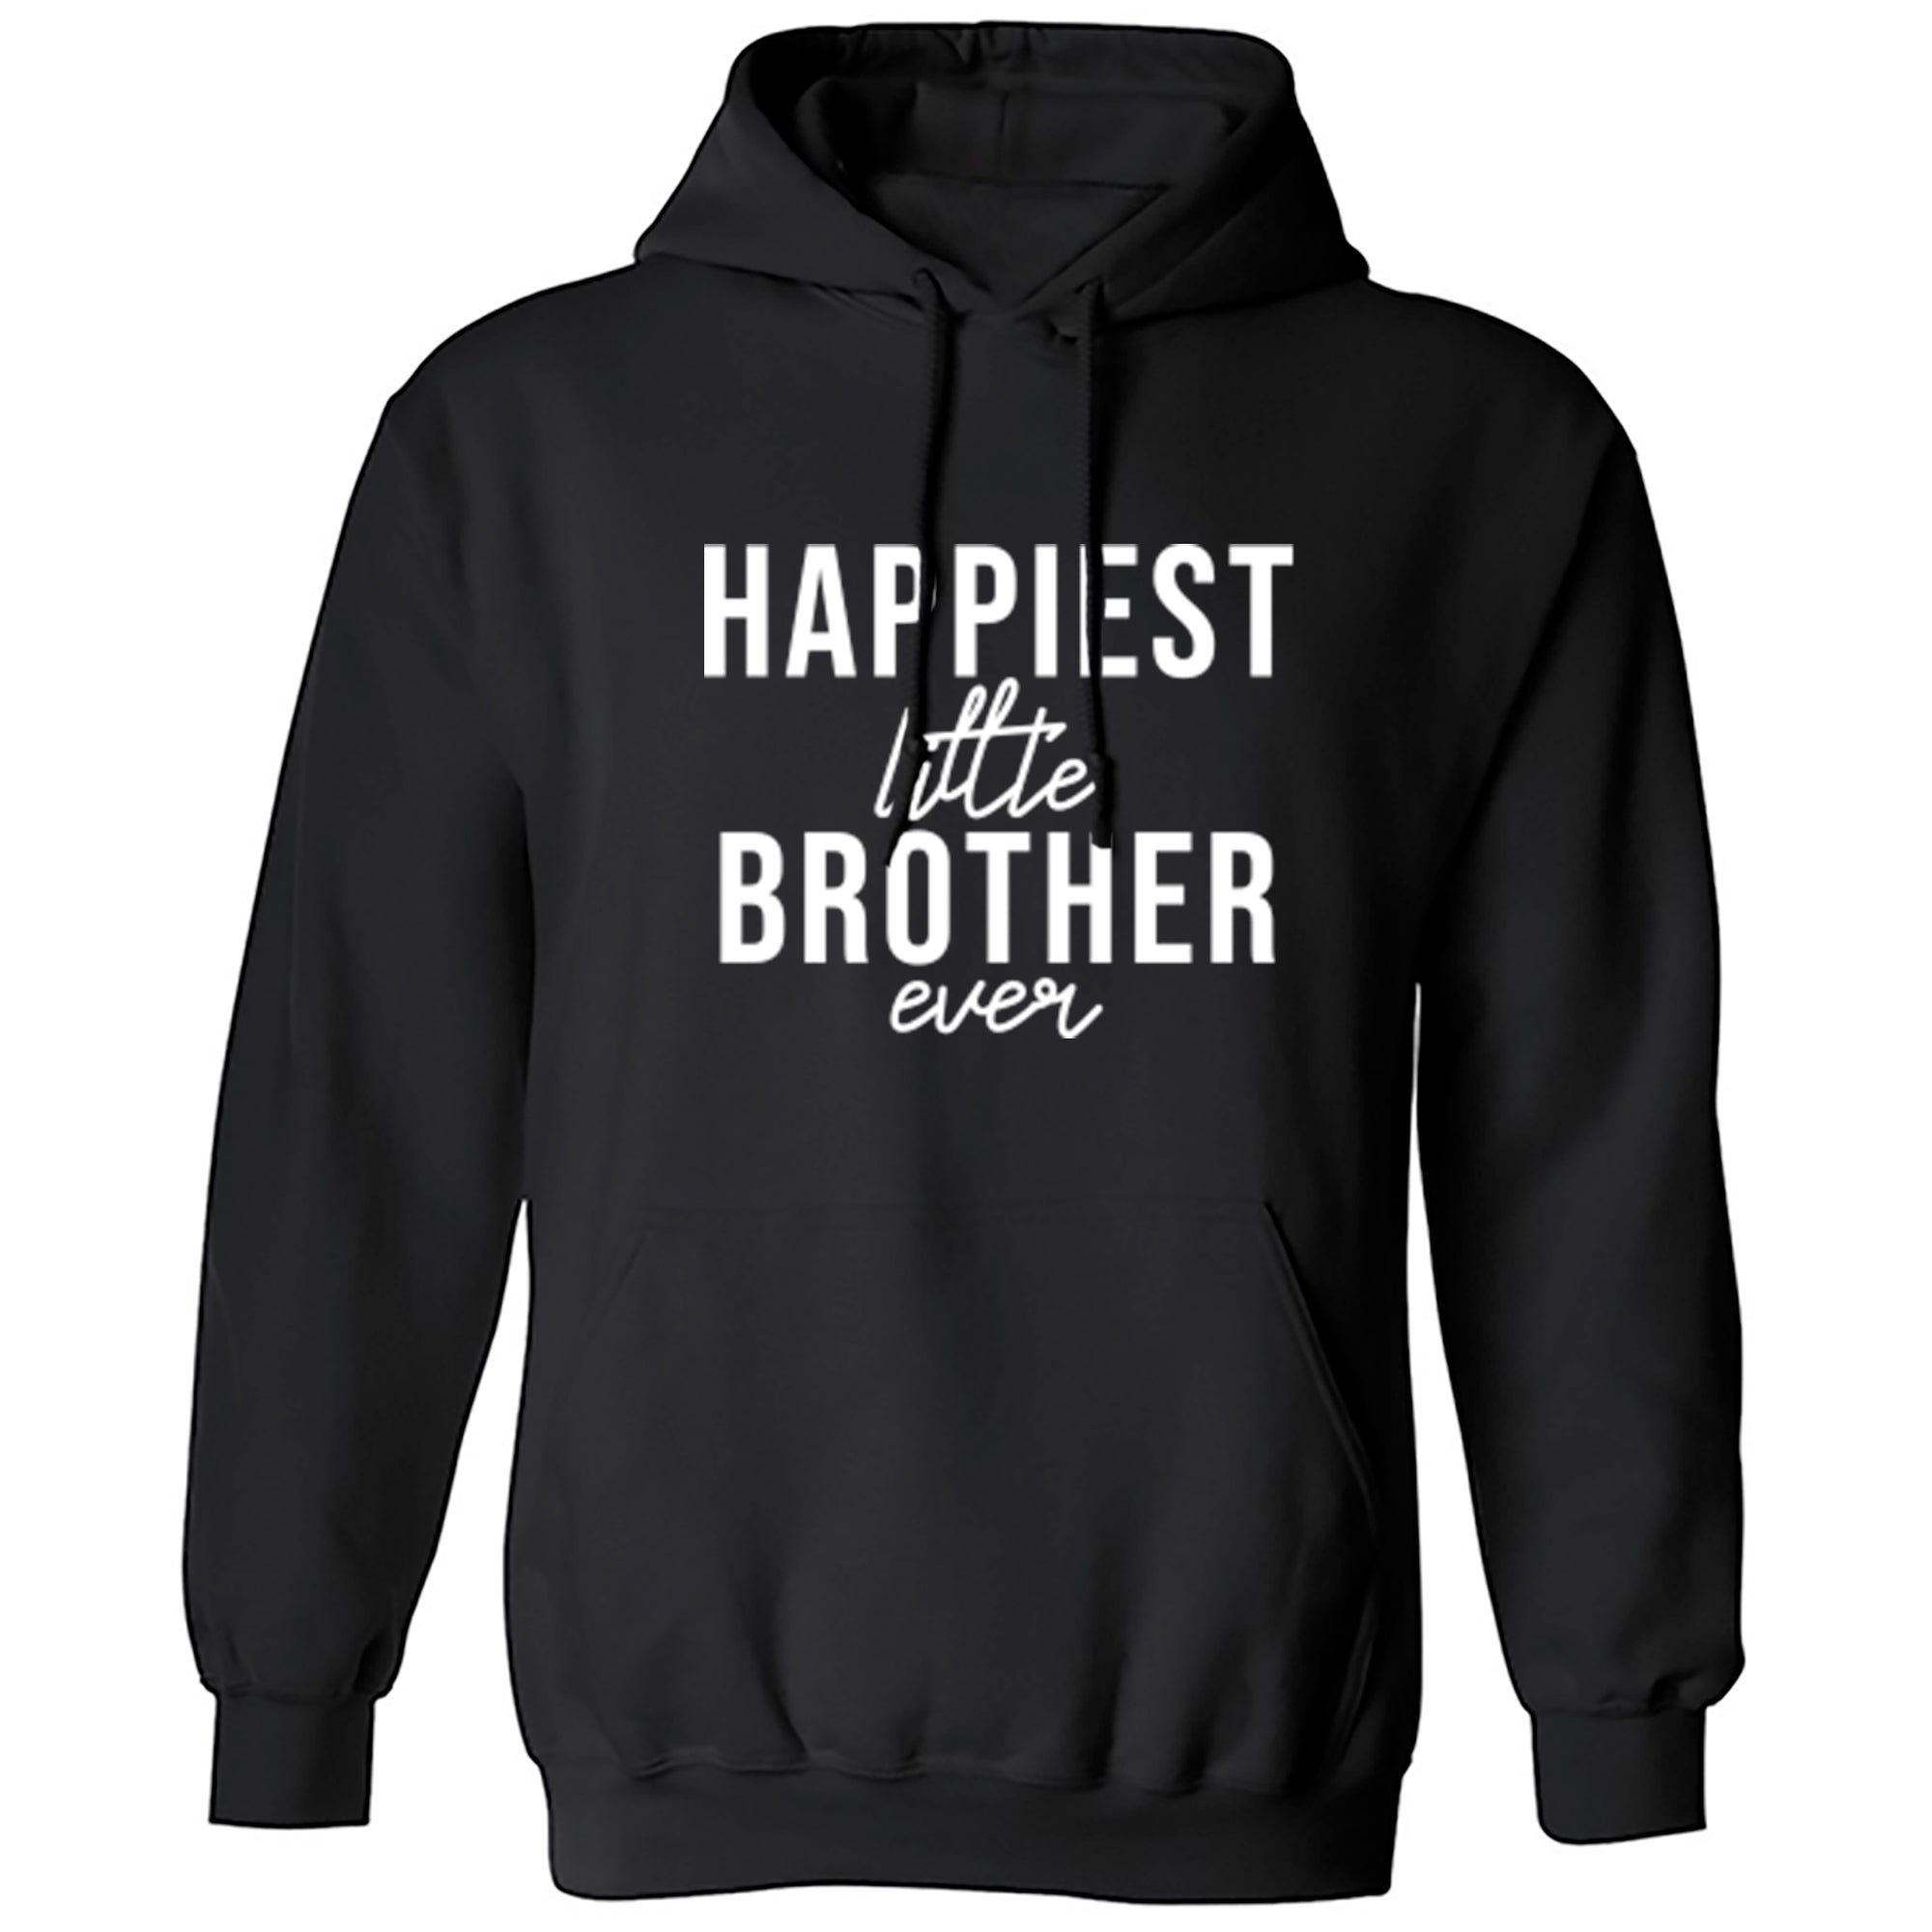 Happiest Little Brother Ever Unisex Hoodie S0521 - Illustrated Identity Ltd.